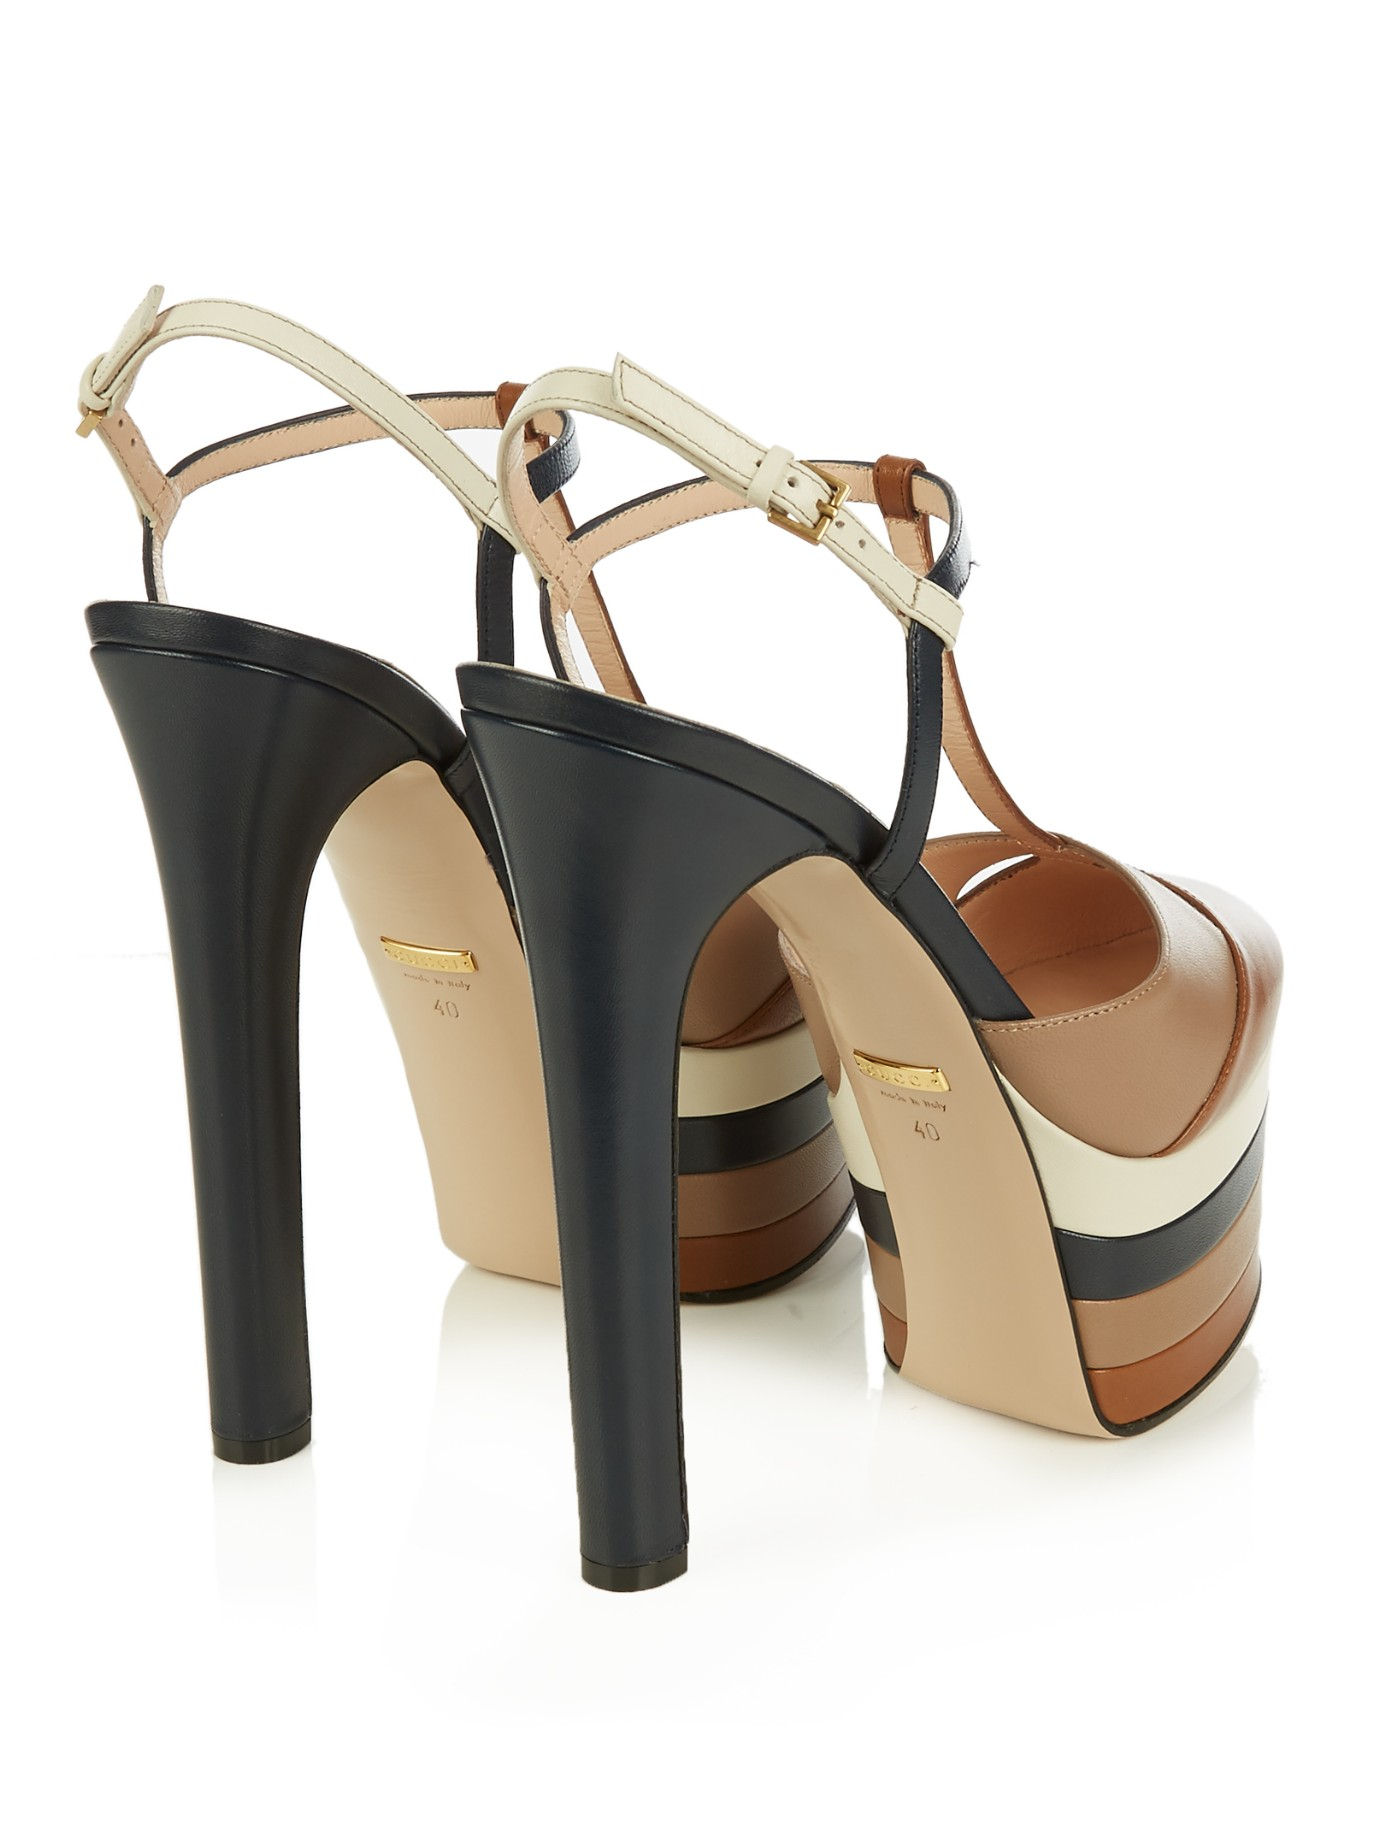 cc414a18fa Gucci Angel Leather Striped Platform Sandals in Brown - Lyst